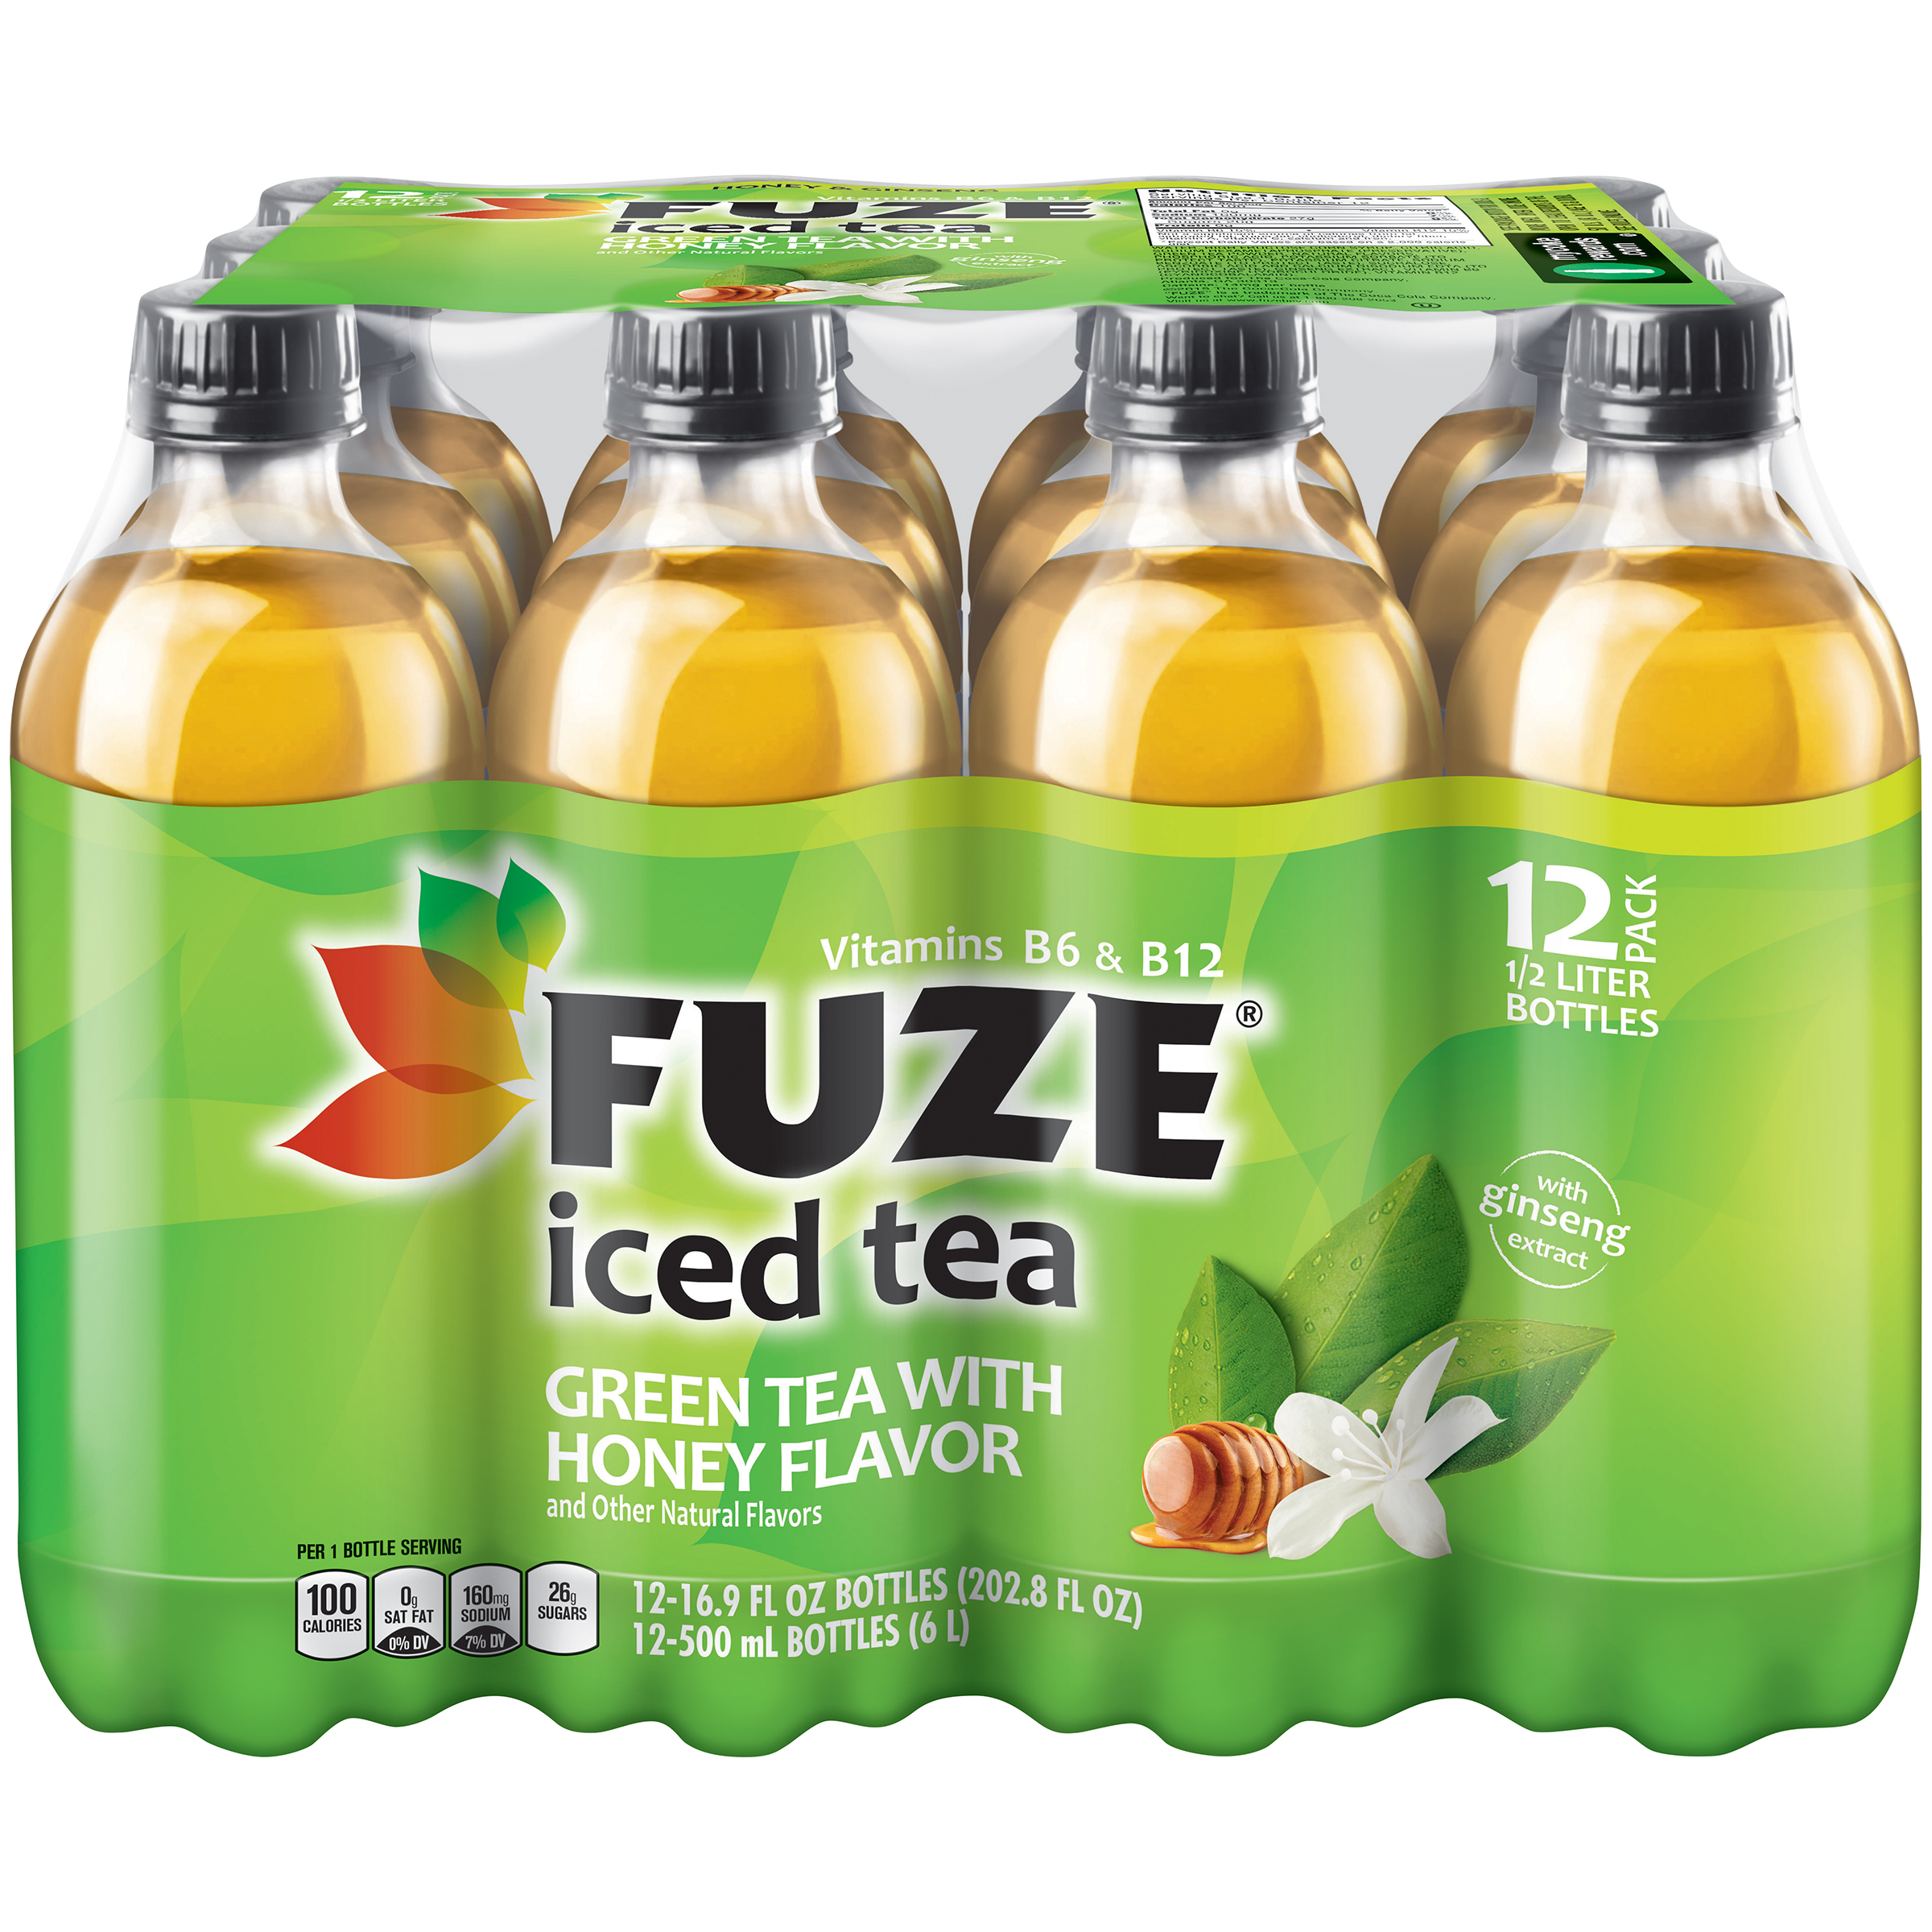 Fuze Iced Tea Honey & Ginseng Green Tea Bottles, 16.9 fl oz, 12 Pack